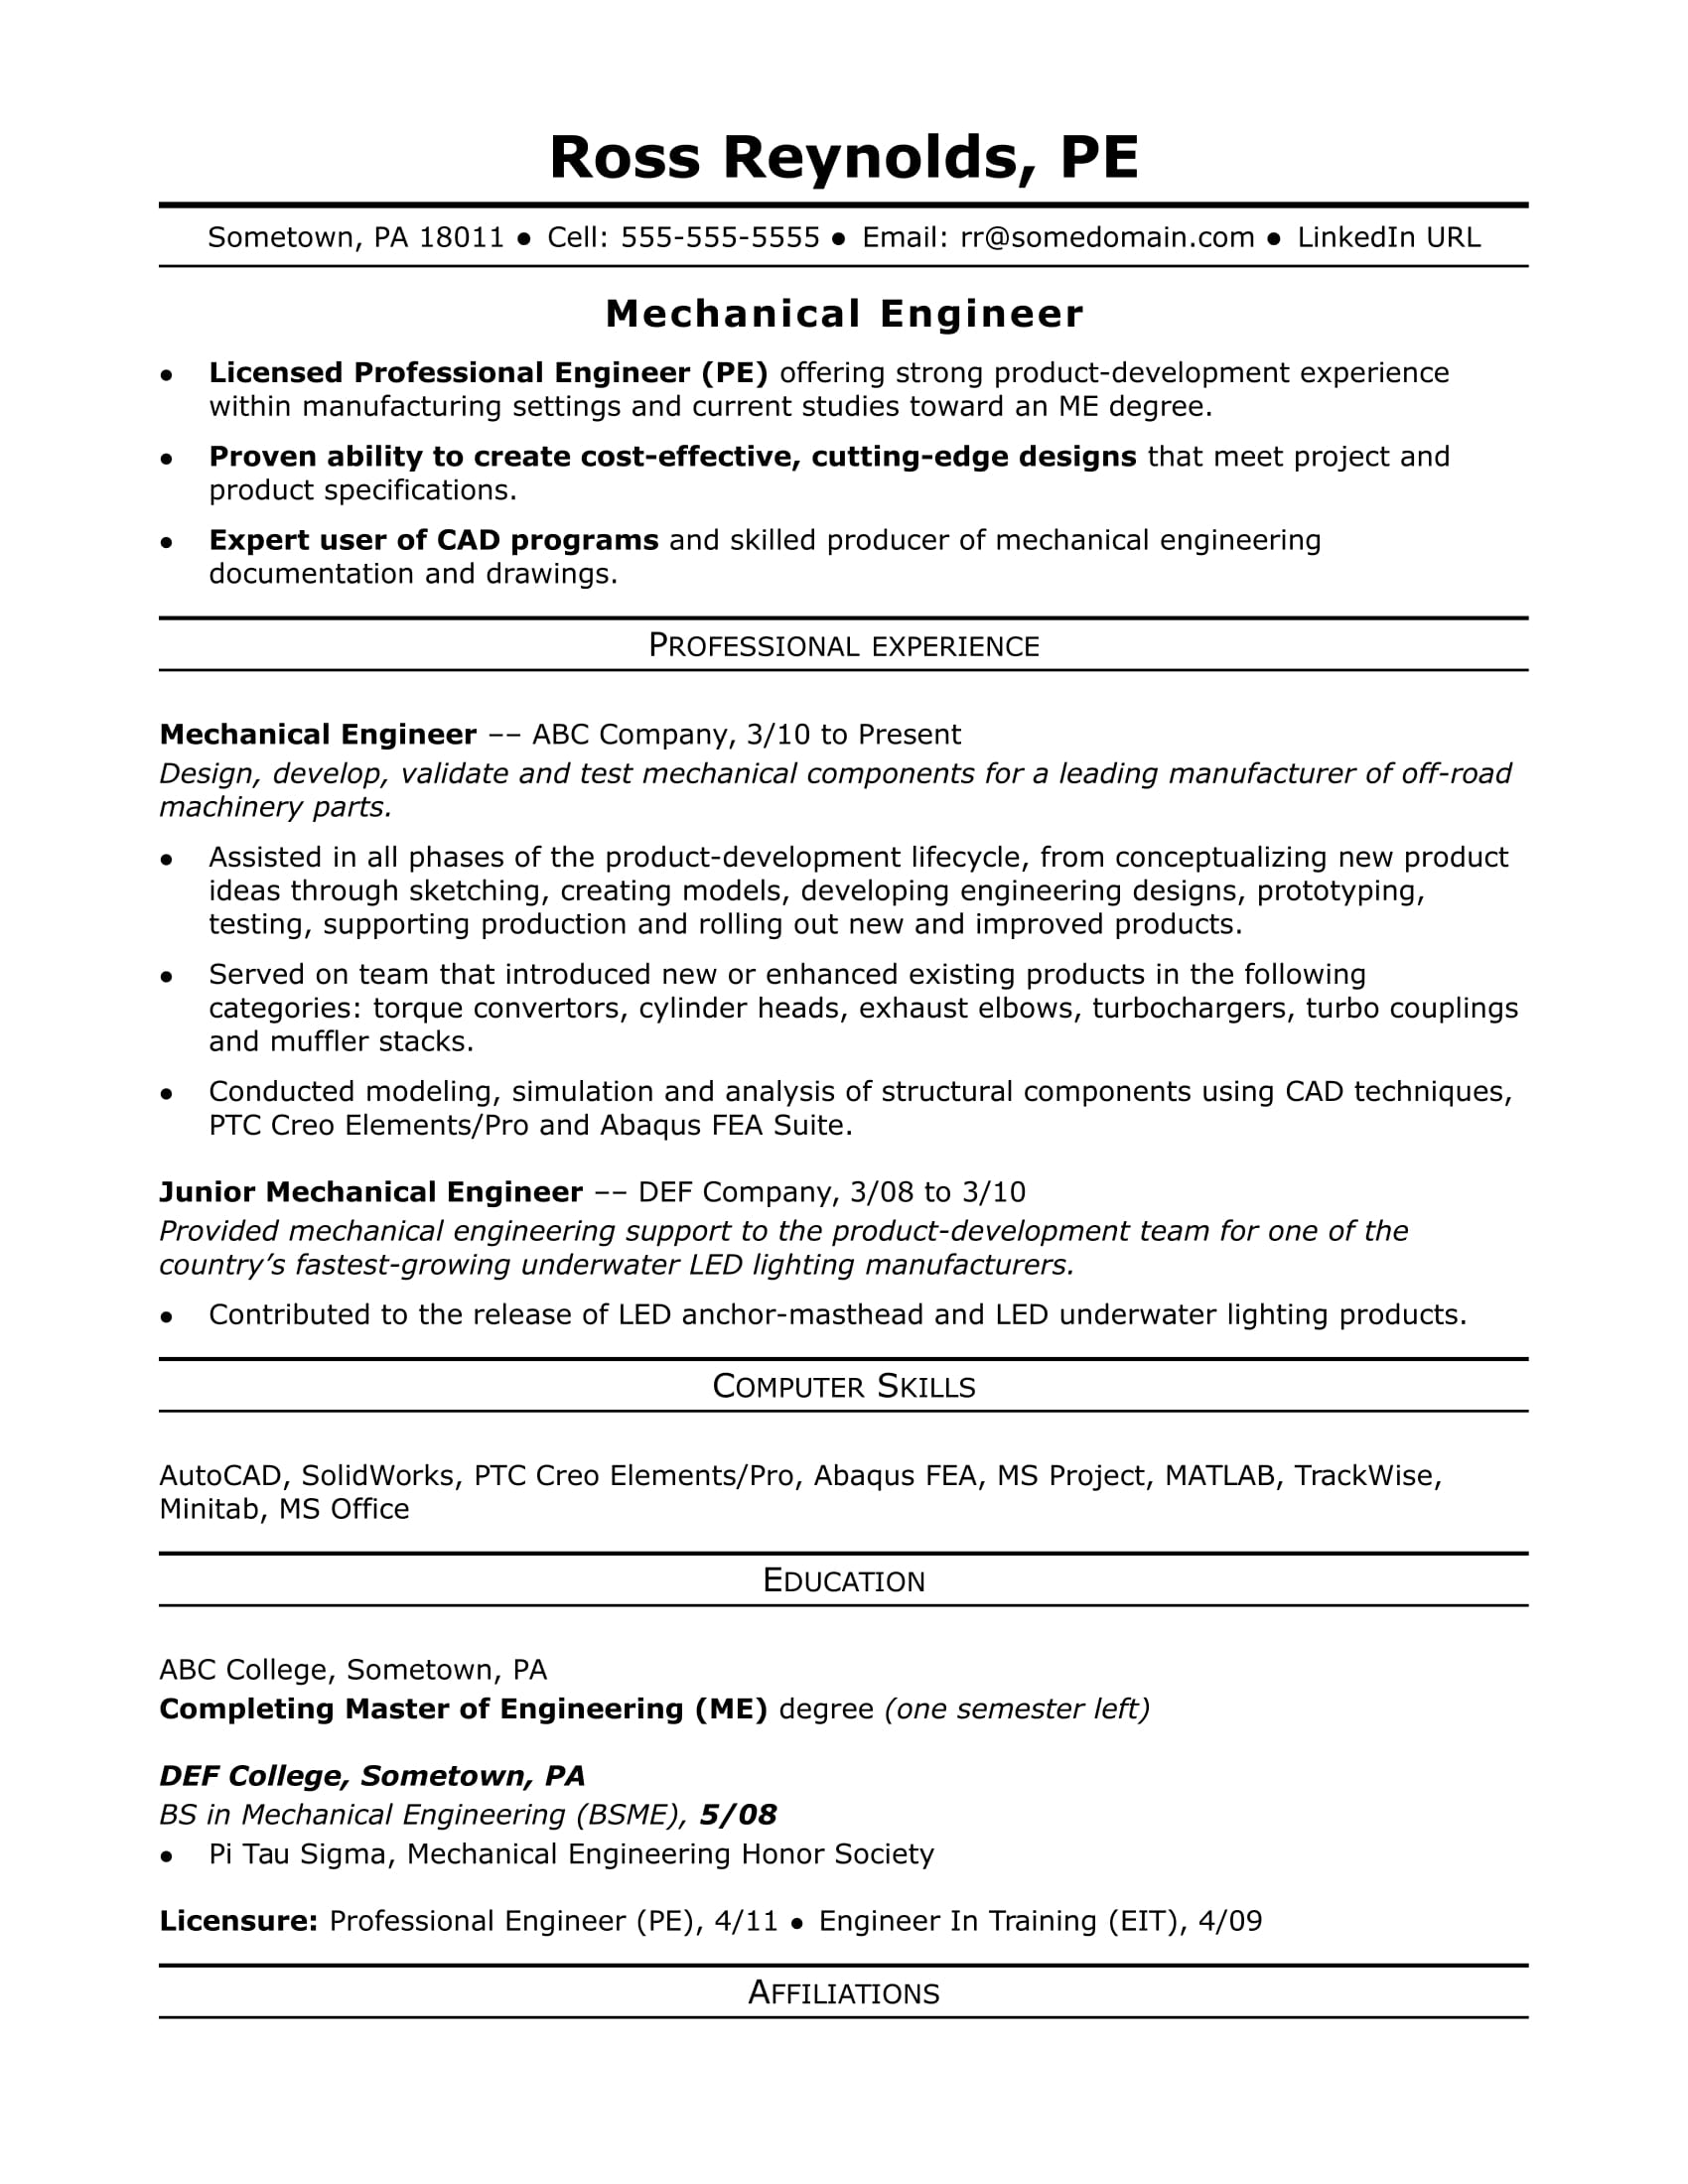 2 Years Experience Mechanical Engineer Resume Sample Resume For A Midlevel Mechanical Engineer Monster